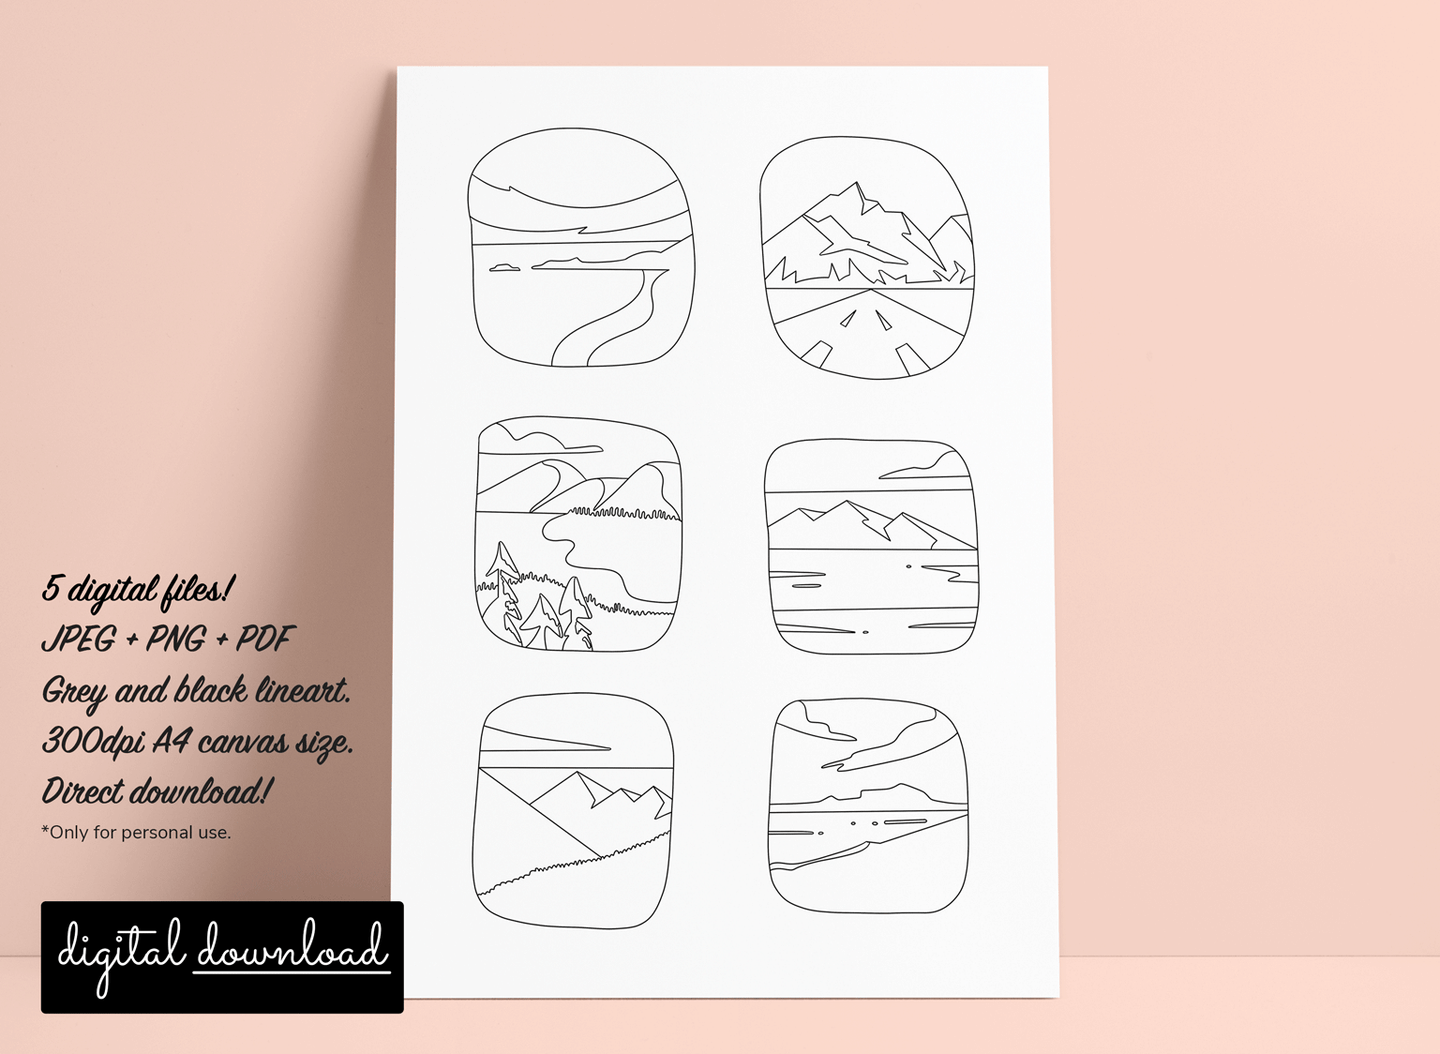 Printable colouring page with landscapes grid design.